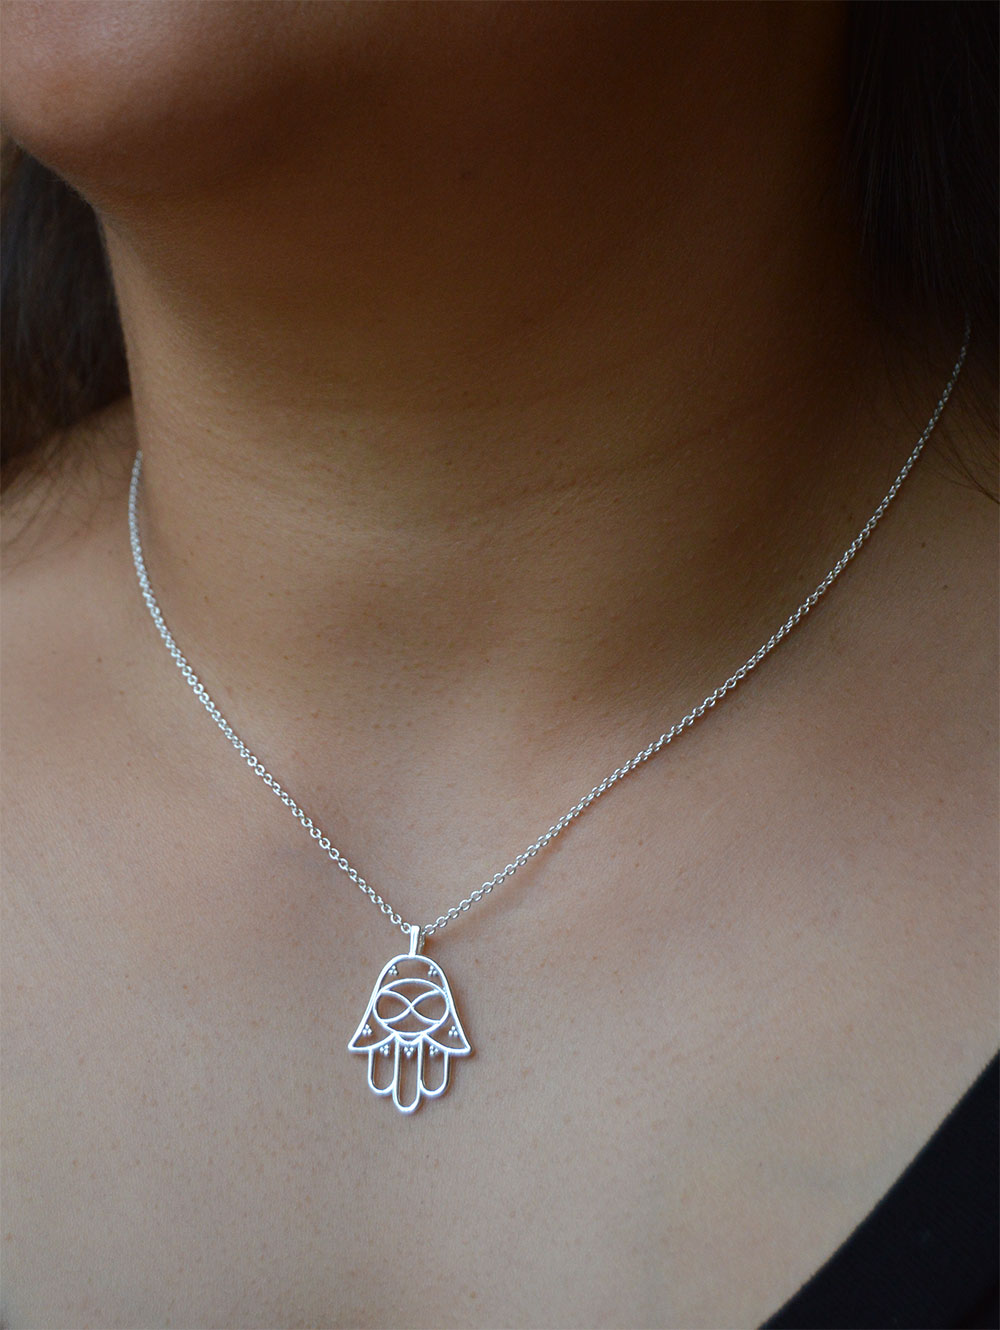 Hamsa Silver Plated Necklace in Focus by SHIKHAZURI